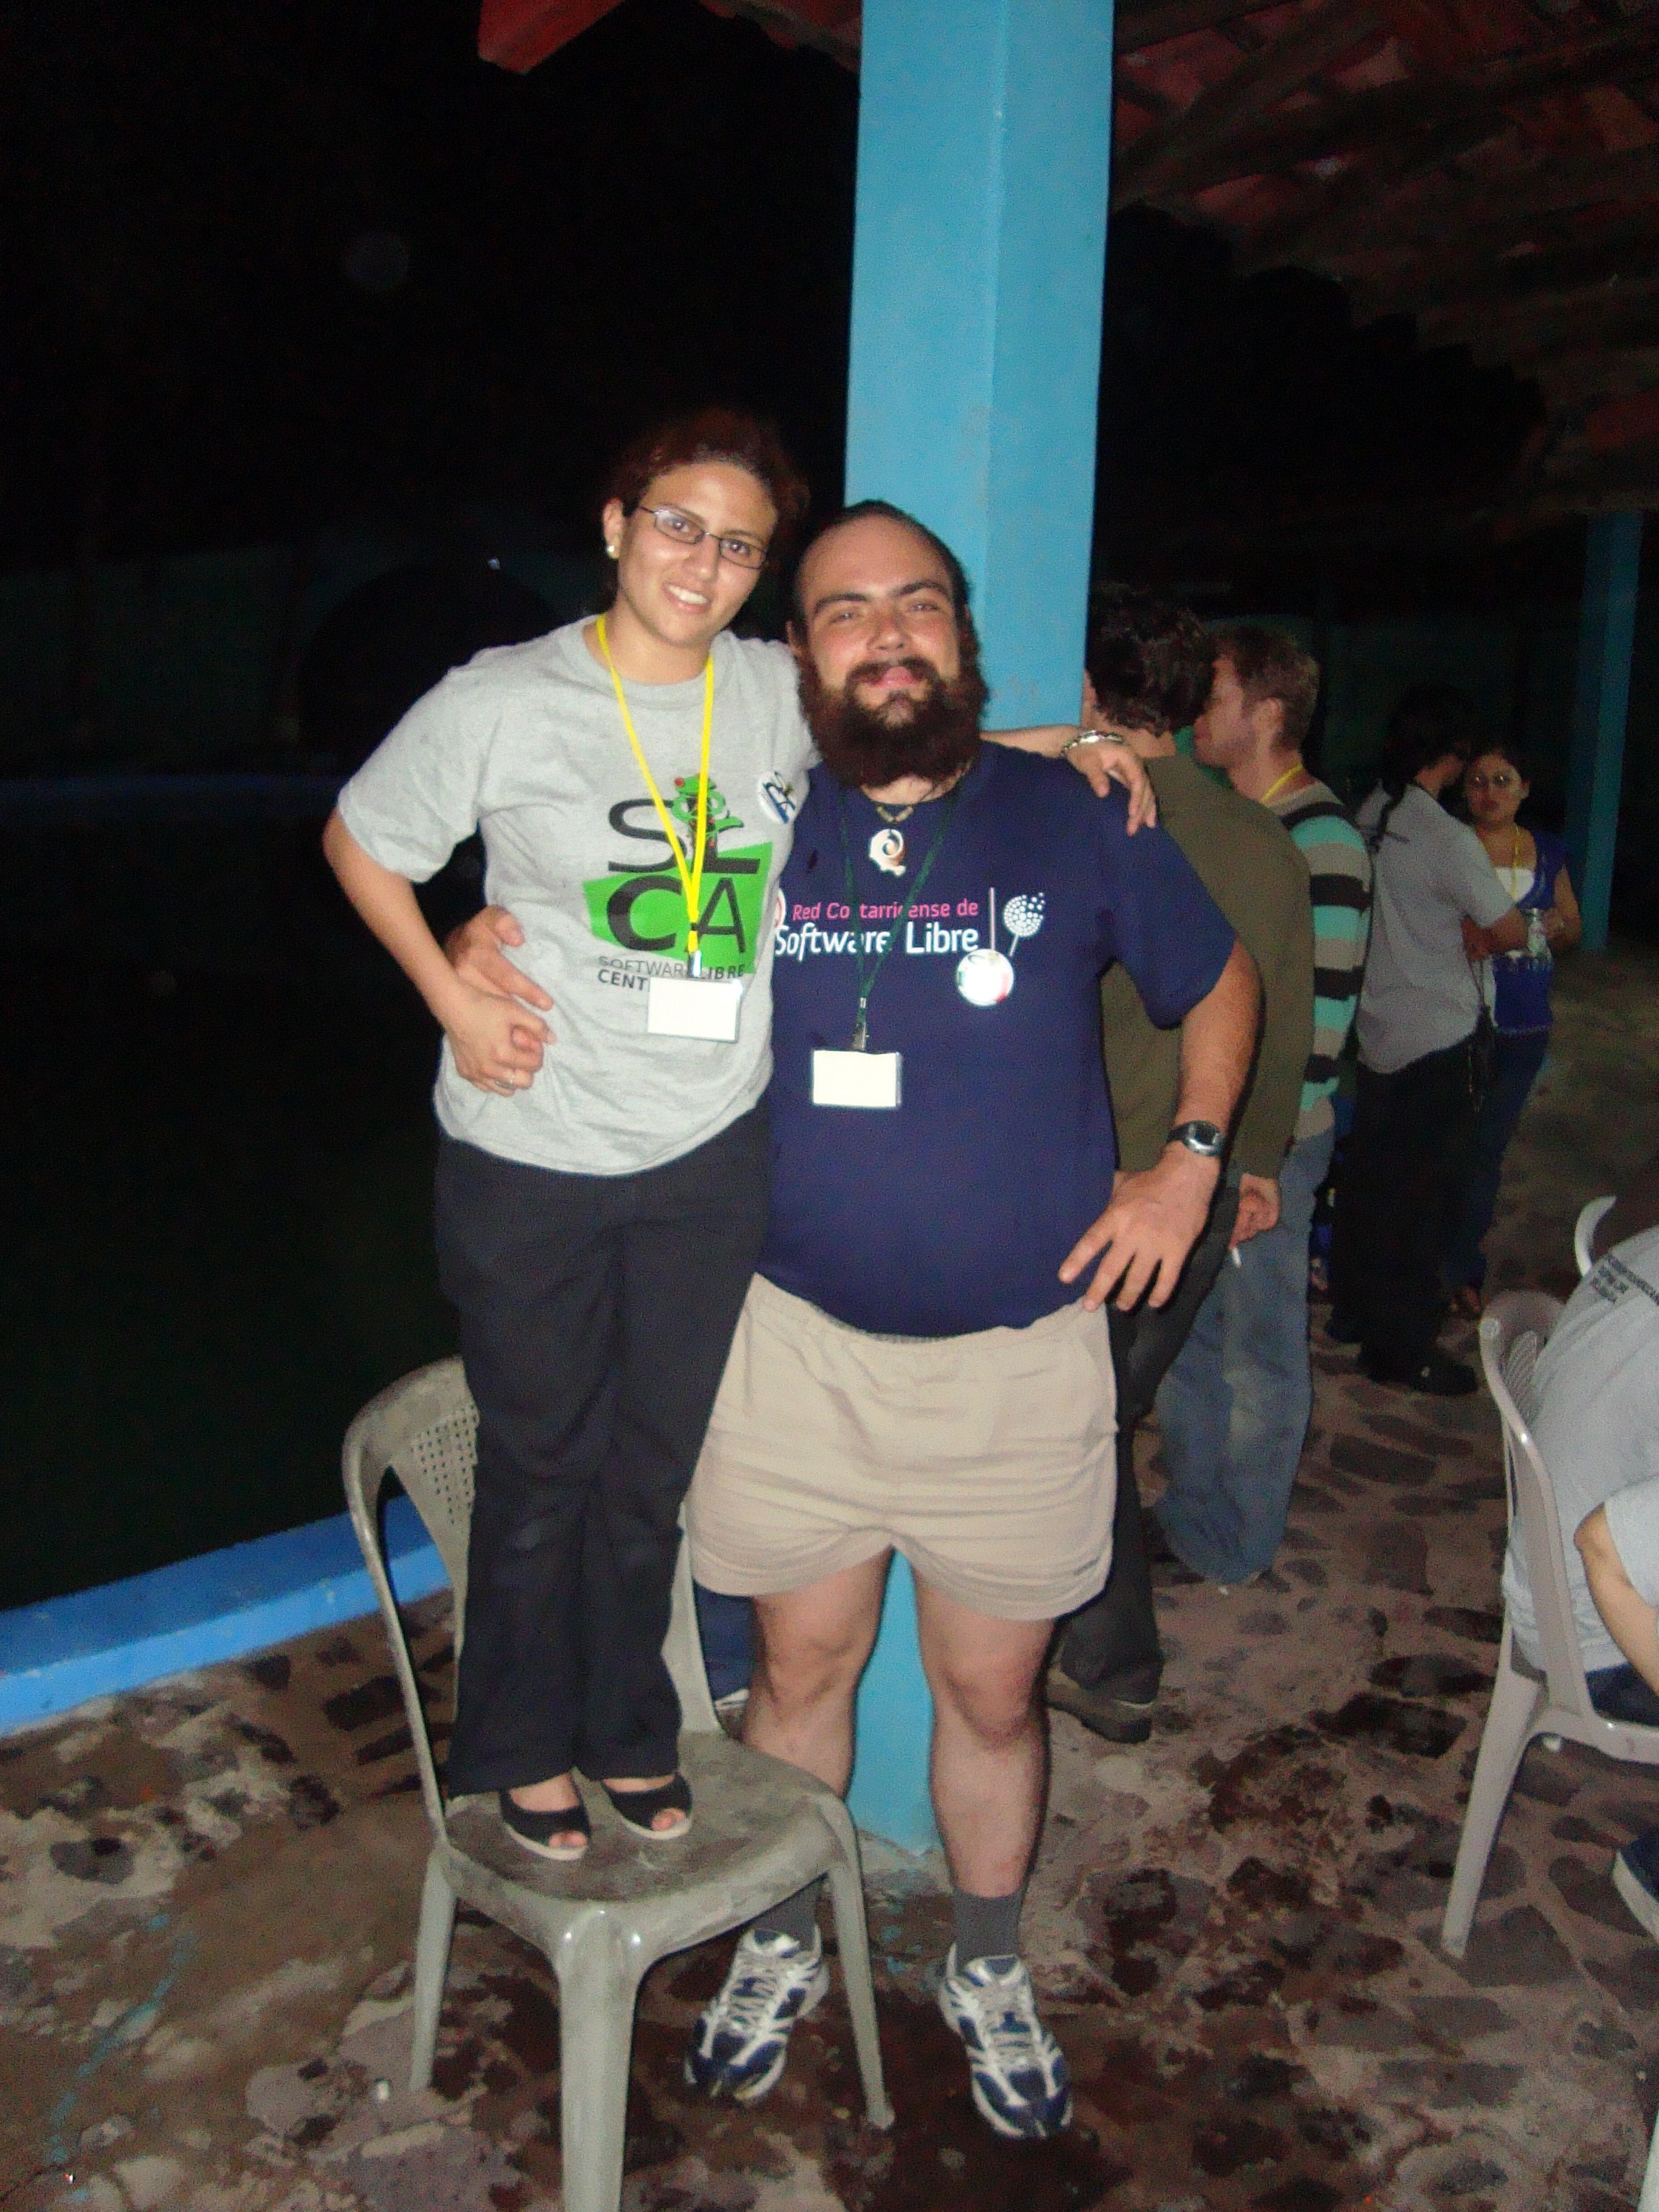 With Helen, from Honduras, who is also a frequent EDUSOL follower